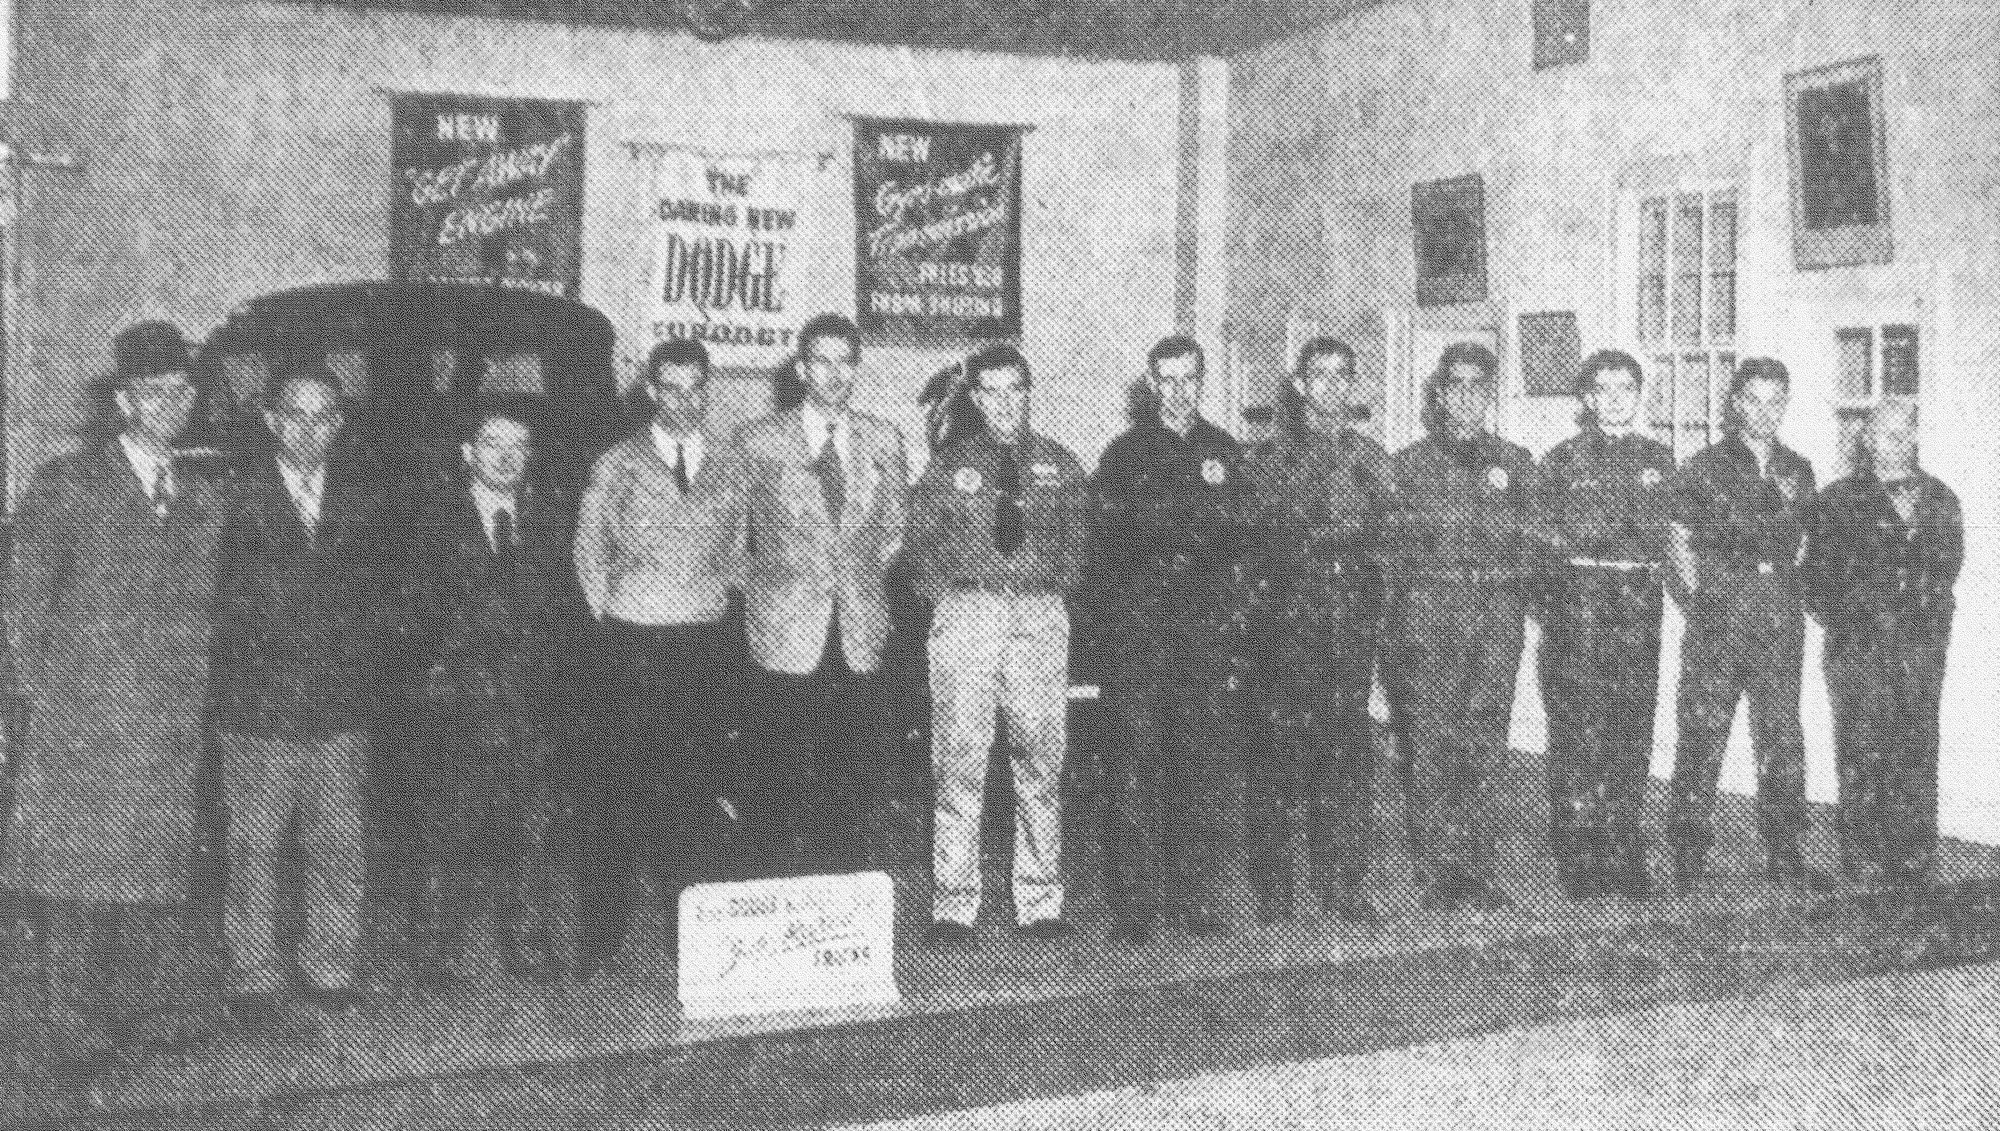 Members of McCollum Motors are seen in 1949. From left are J. H. McCollum, F. K. Holman, Vaughan Jennings, Walter LeNoir, R. T. Brown Jr., Harry Brunson, Carl Tobias, John I. Steele, Joseph Puglia, Harvey Reynolds, Patterson Clarke and Ben E. Furse.